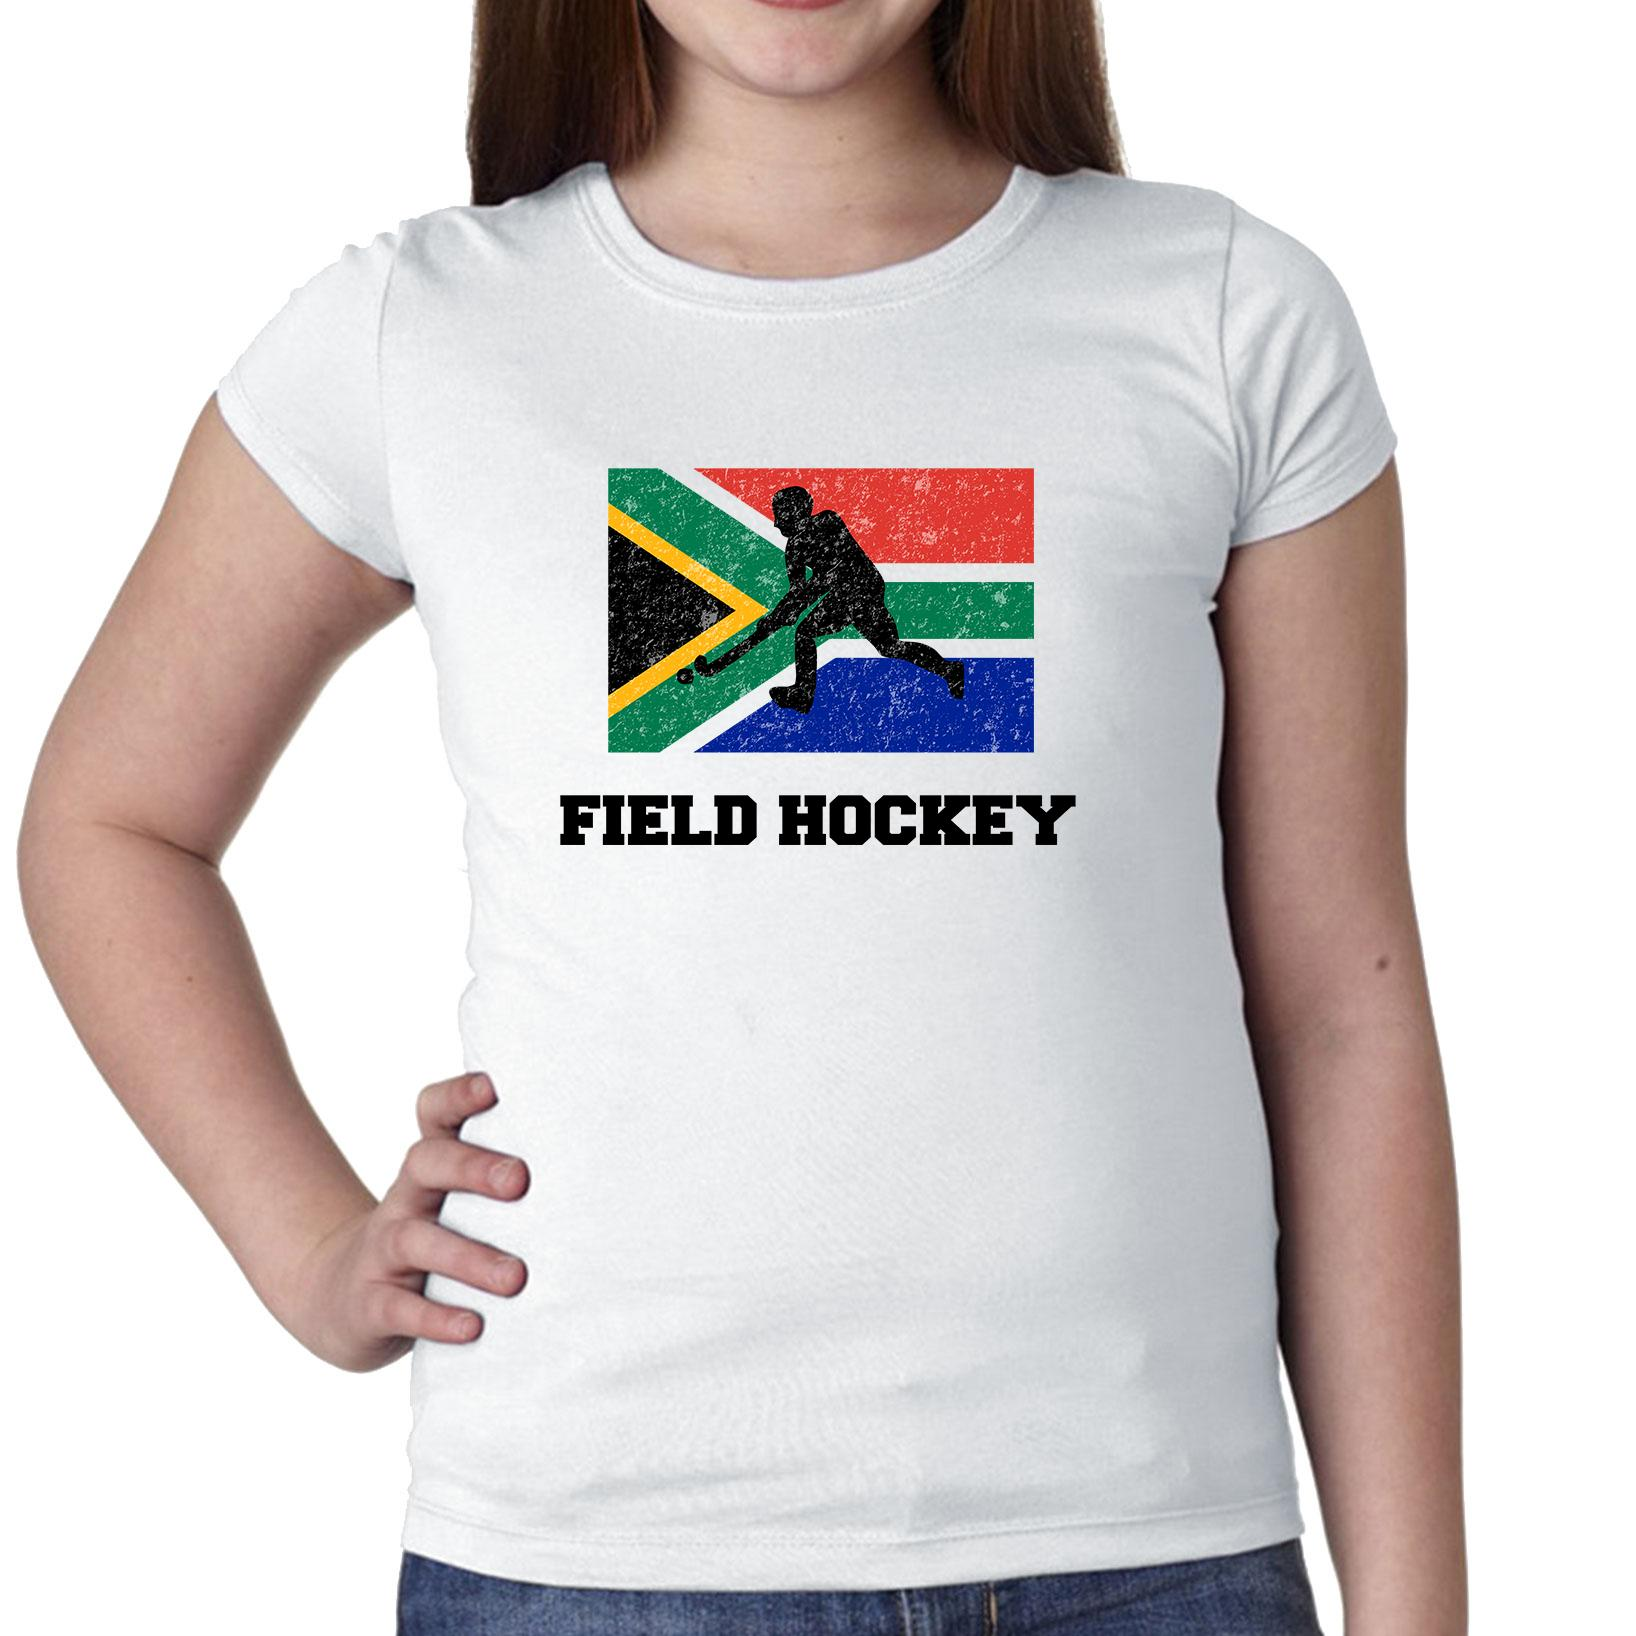 South Africa Olympic Field Hockey Flag Silhouette Girl's Cotton Youth T-Shirt by Hollywood Thread